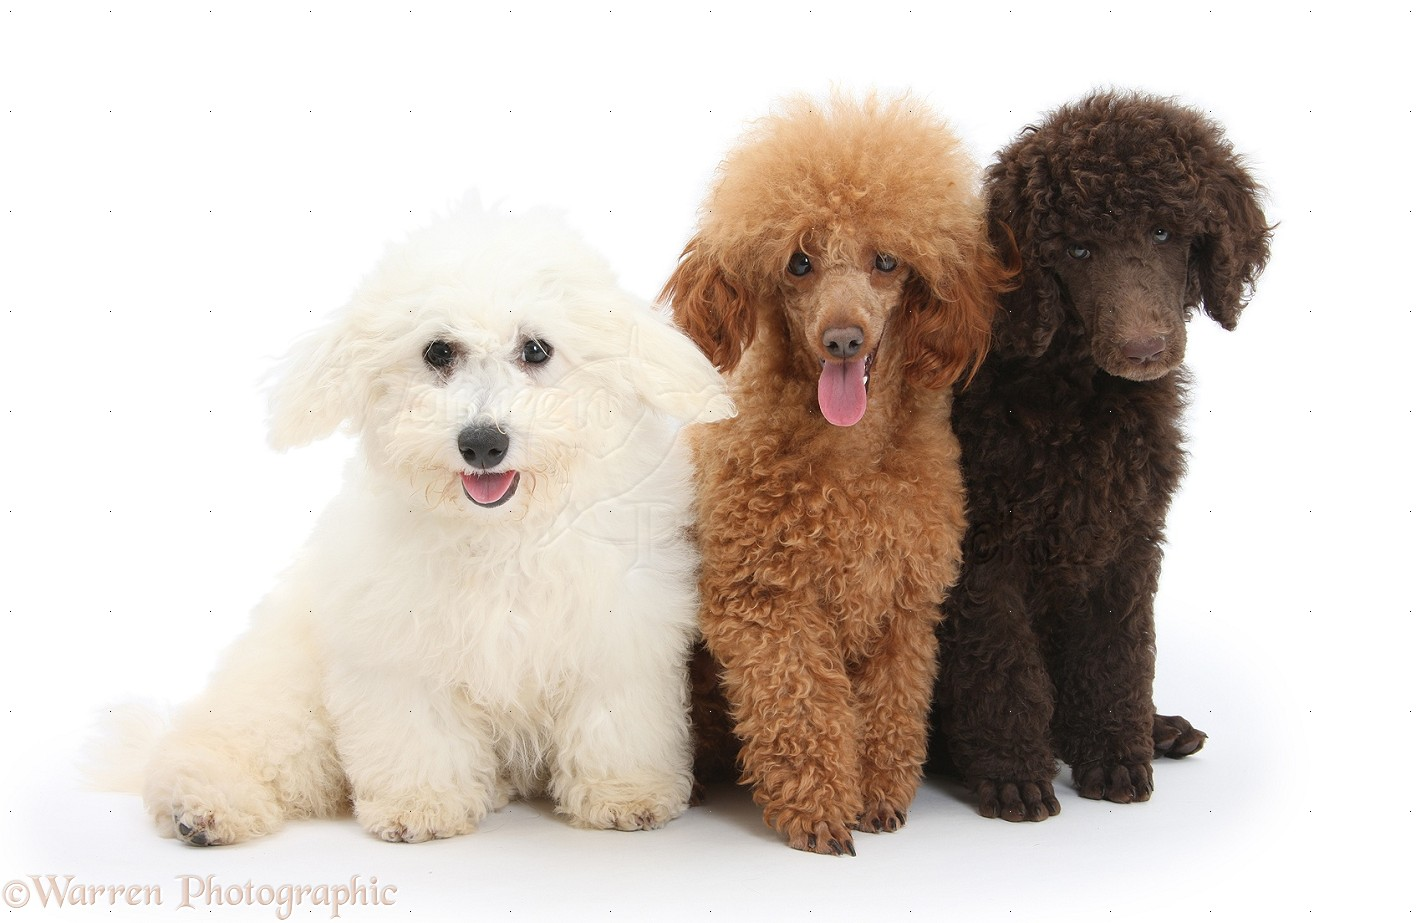 Dogs: Bichon, Standard Poodle pup and adult toy poodle photo - WP21422